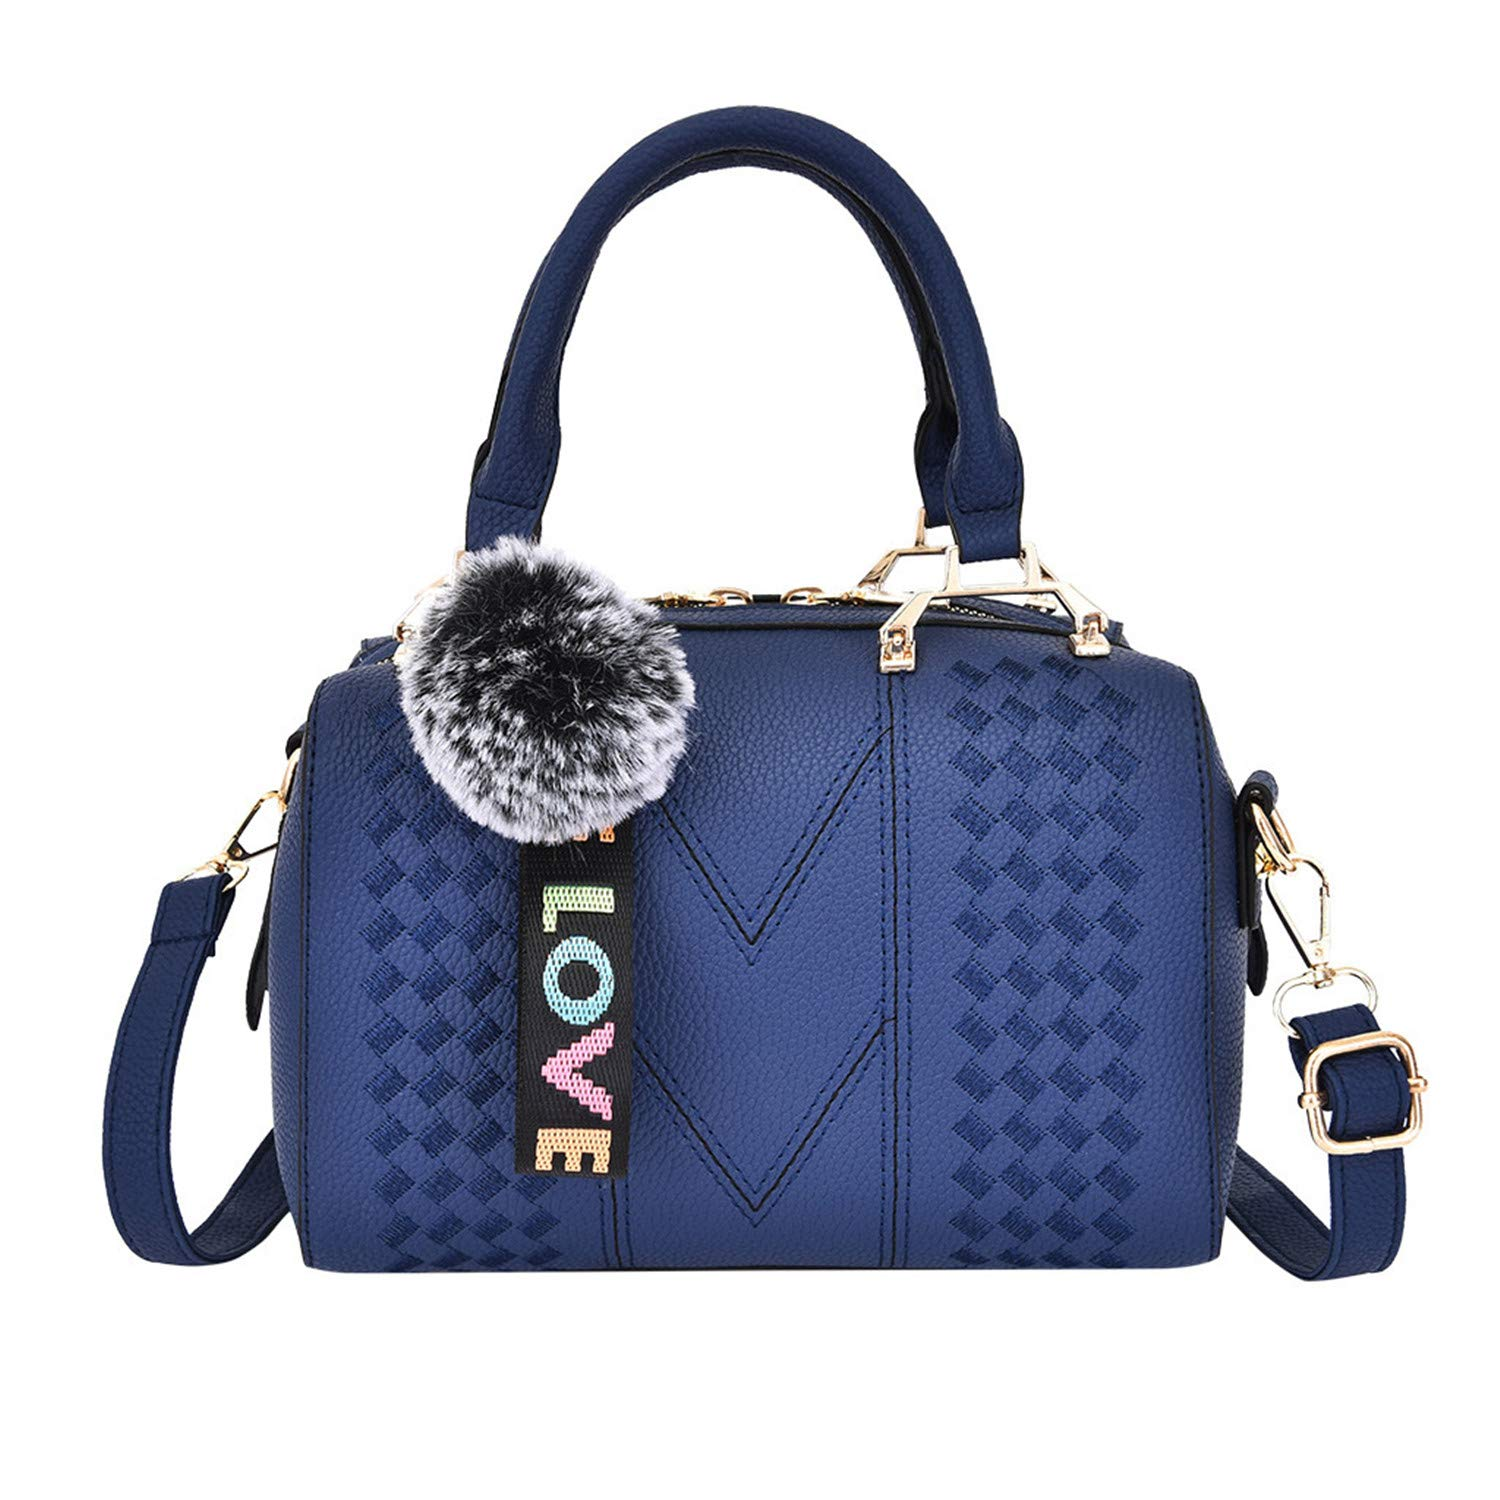 Womens Embroidered Handbag, Ladies Leather Messenger Shoulder Bag Shopping Work Satchels Phone Cosmetic Top-Handle Bags (Blue)